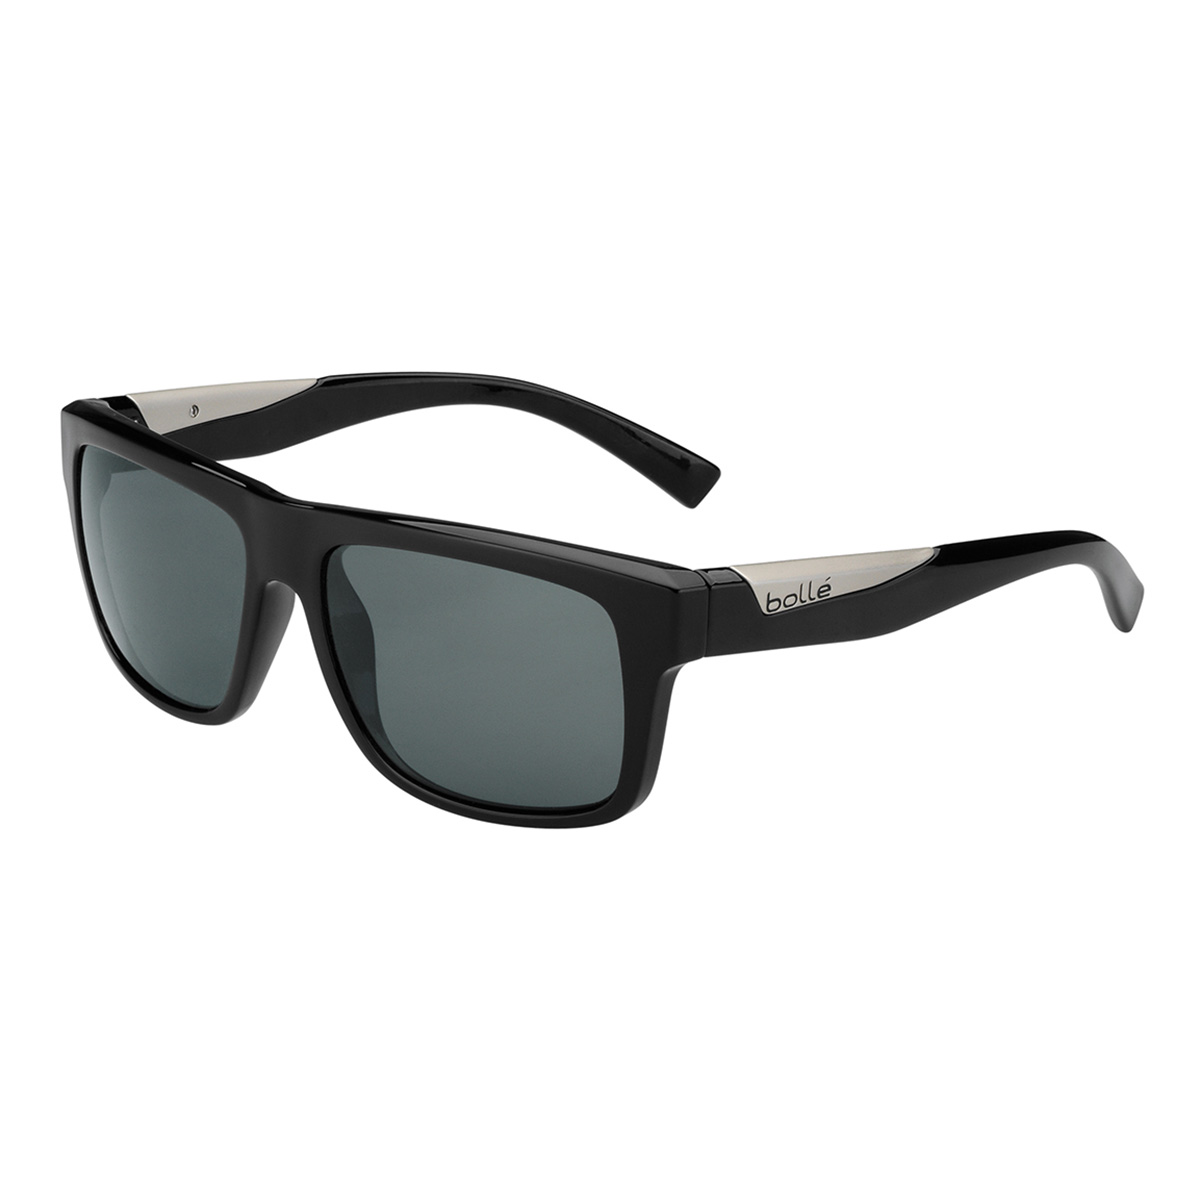 0edccc459b Bolle 11826 Clint Shiny Black Polarized TNS Oleo AR 6 Base ...